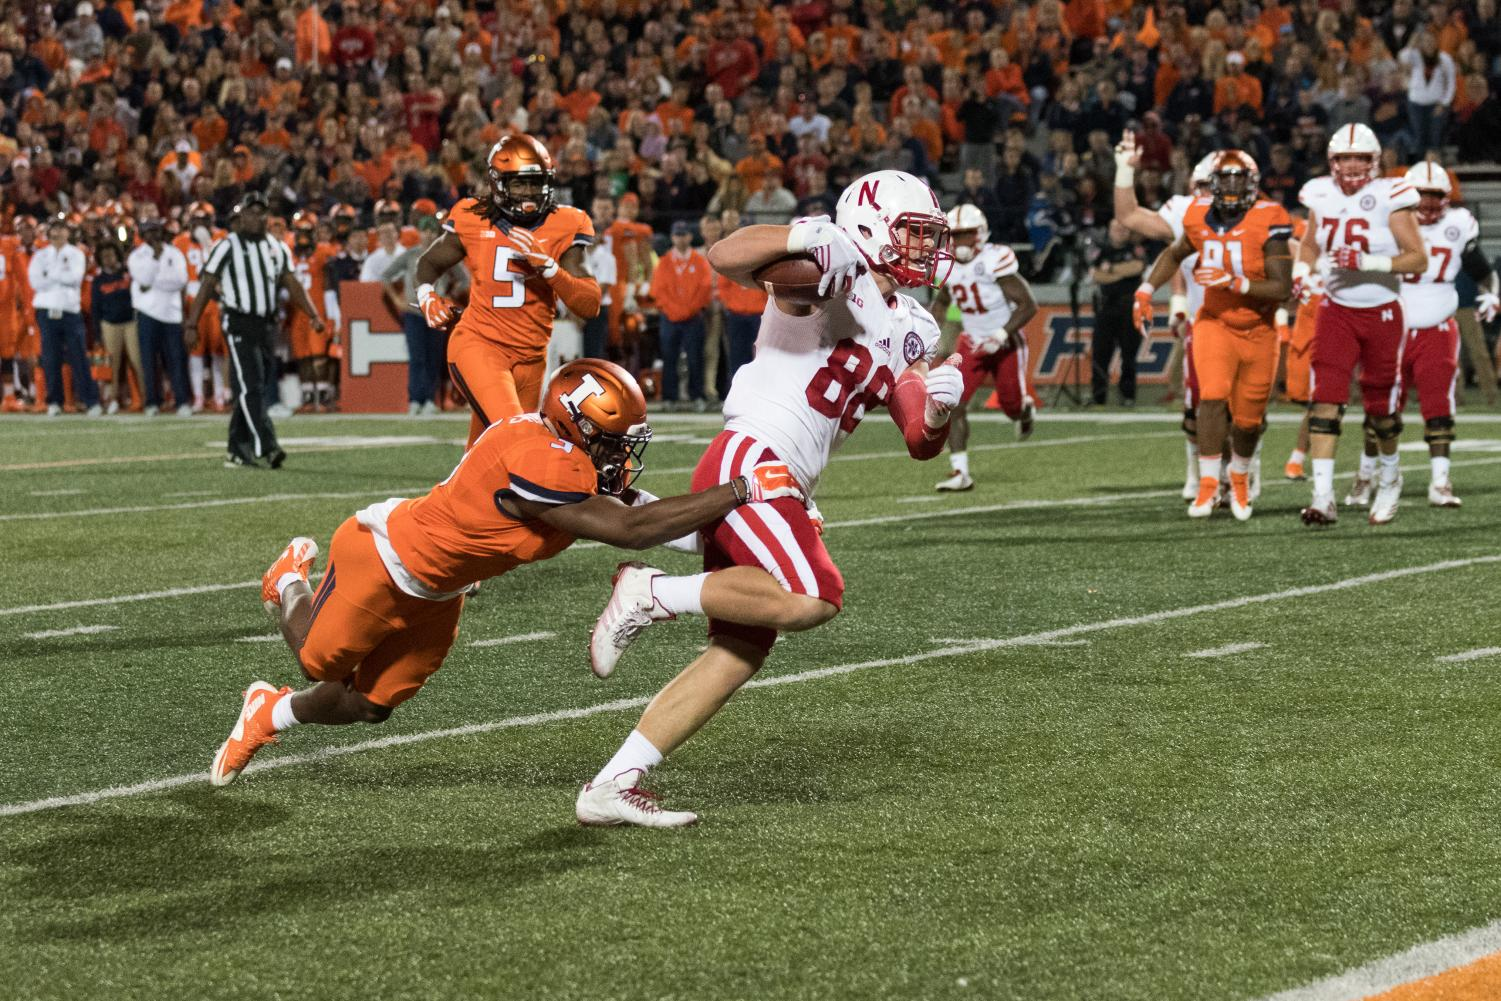 Nebraska scores during the game against Nebraska at Memorial Stadium.  The Illini lost 28-6.